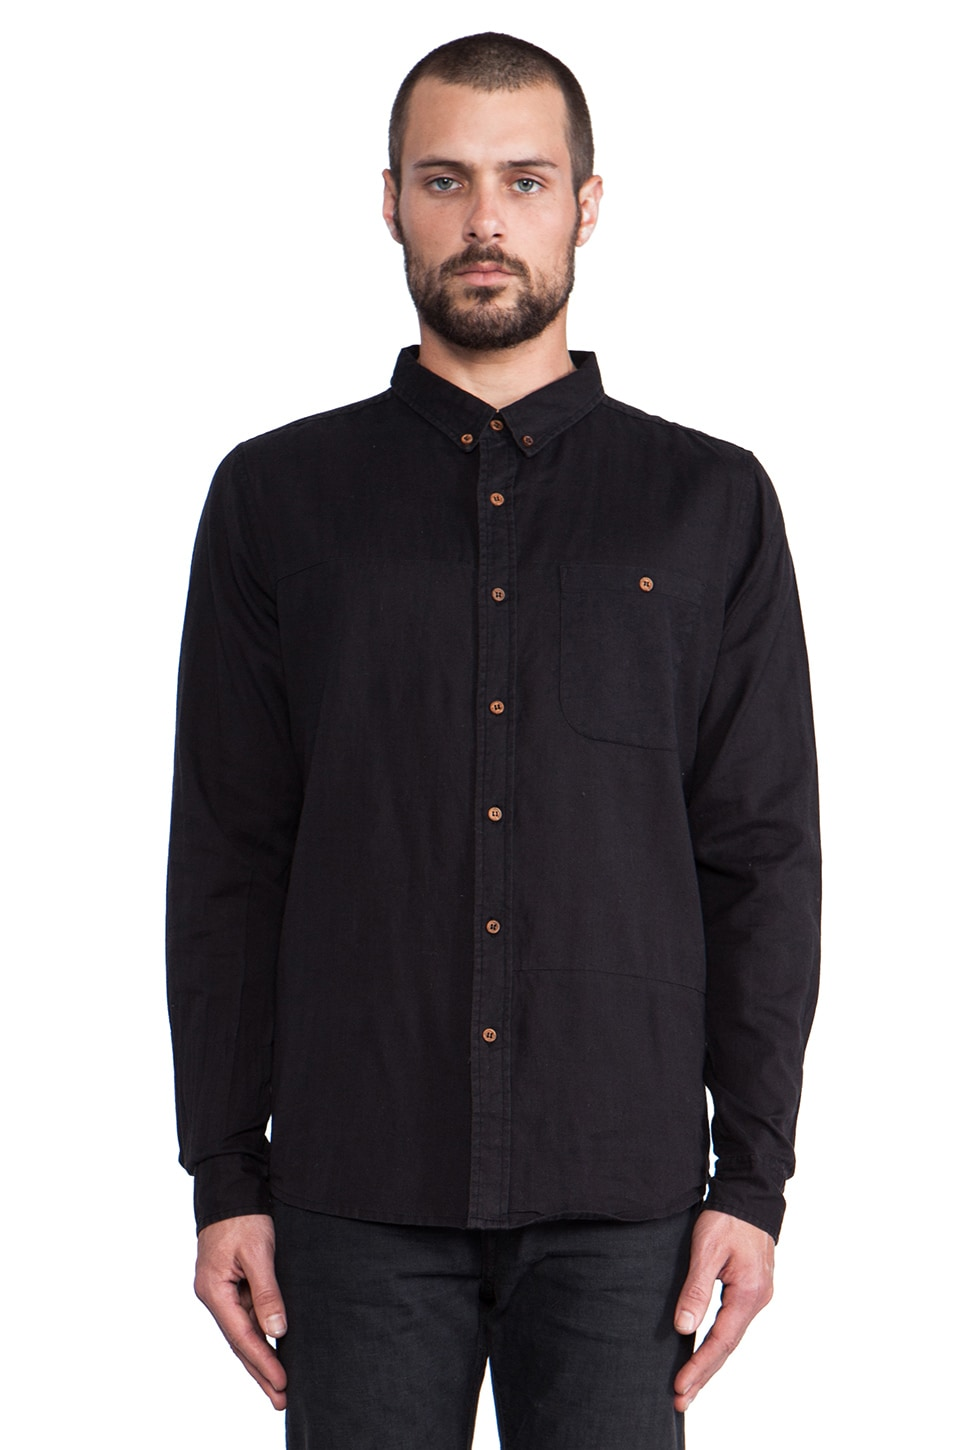 NEUW Pure Shirt in Black